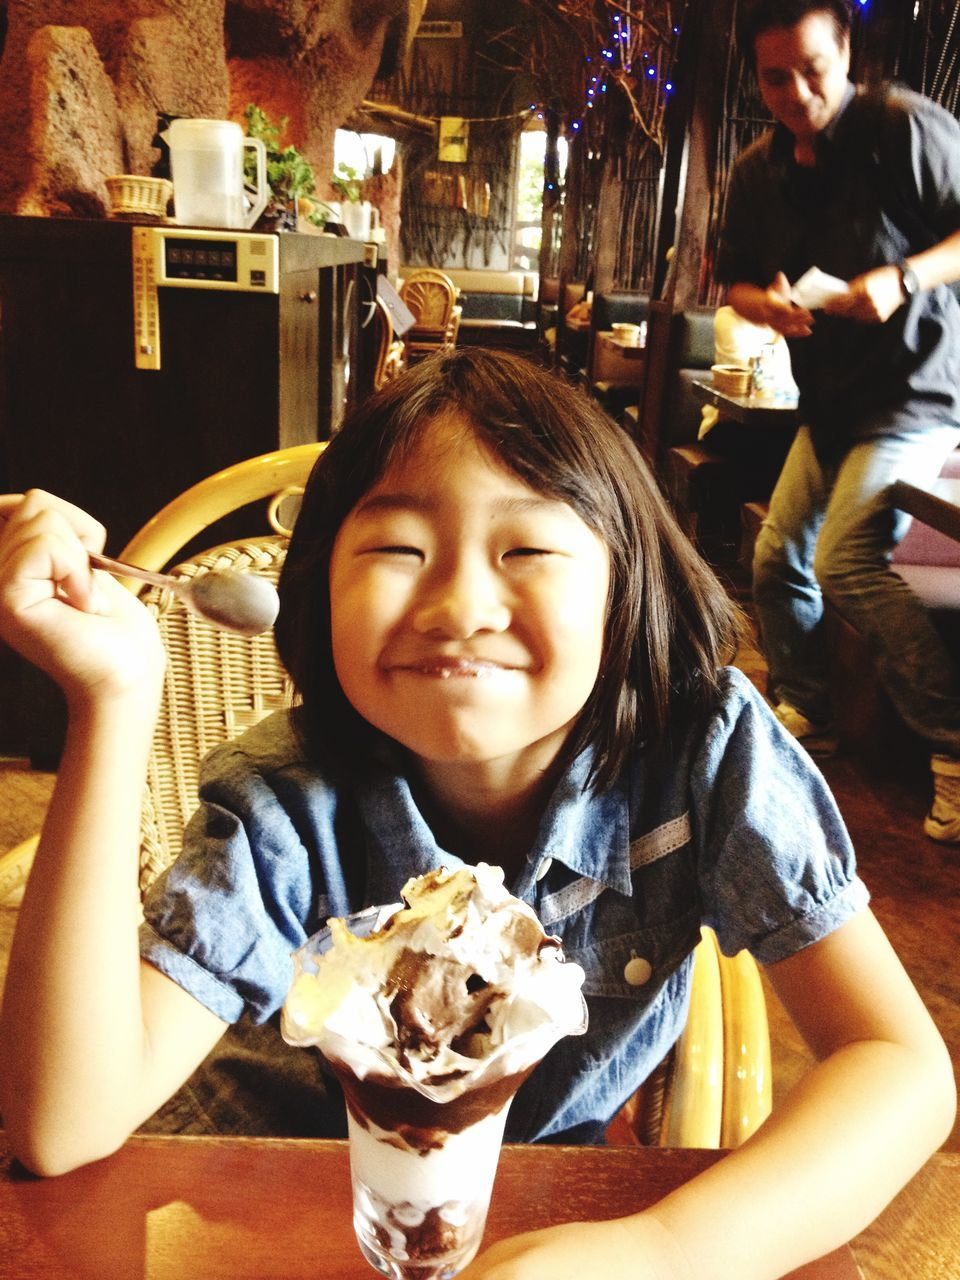 smiling, food and drink, ice cream, happiness, food, real people, looking at camera, childhood, portrait, sweet food, indoors, dessert, cheerful, eating, boys, frozen food, freshness, one person, day, close-up